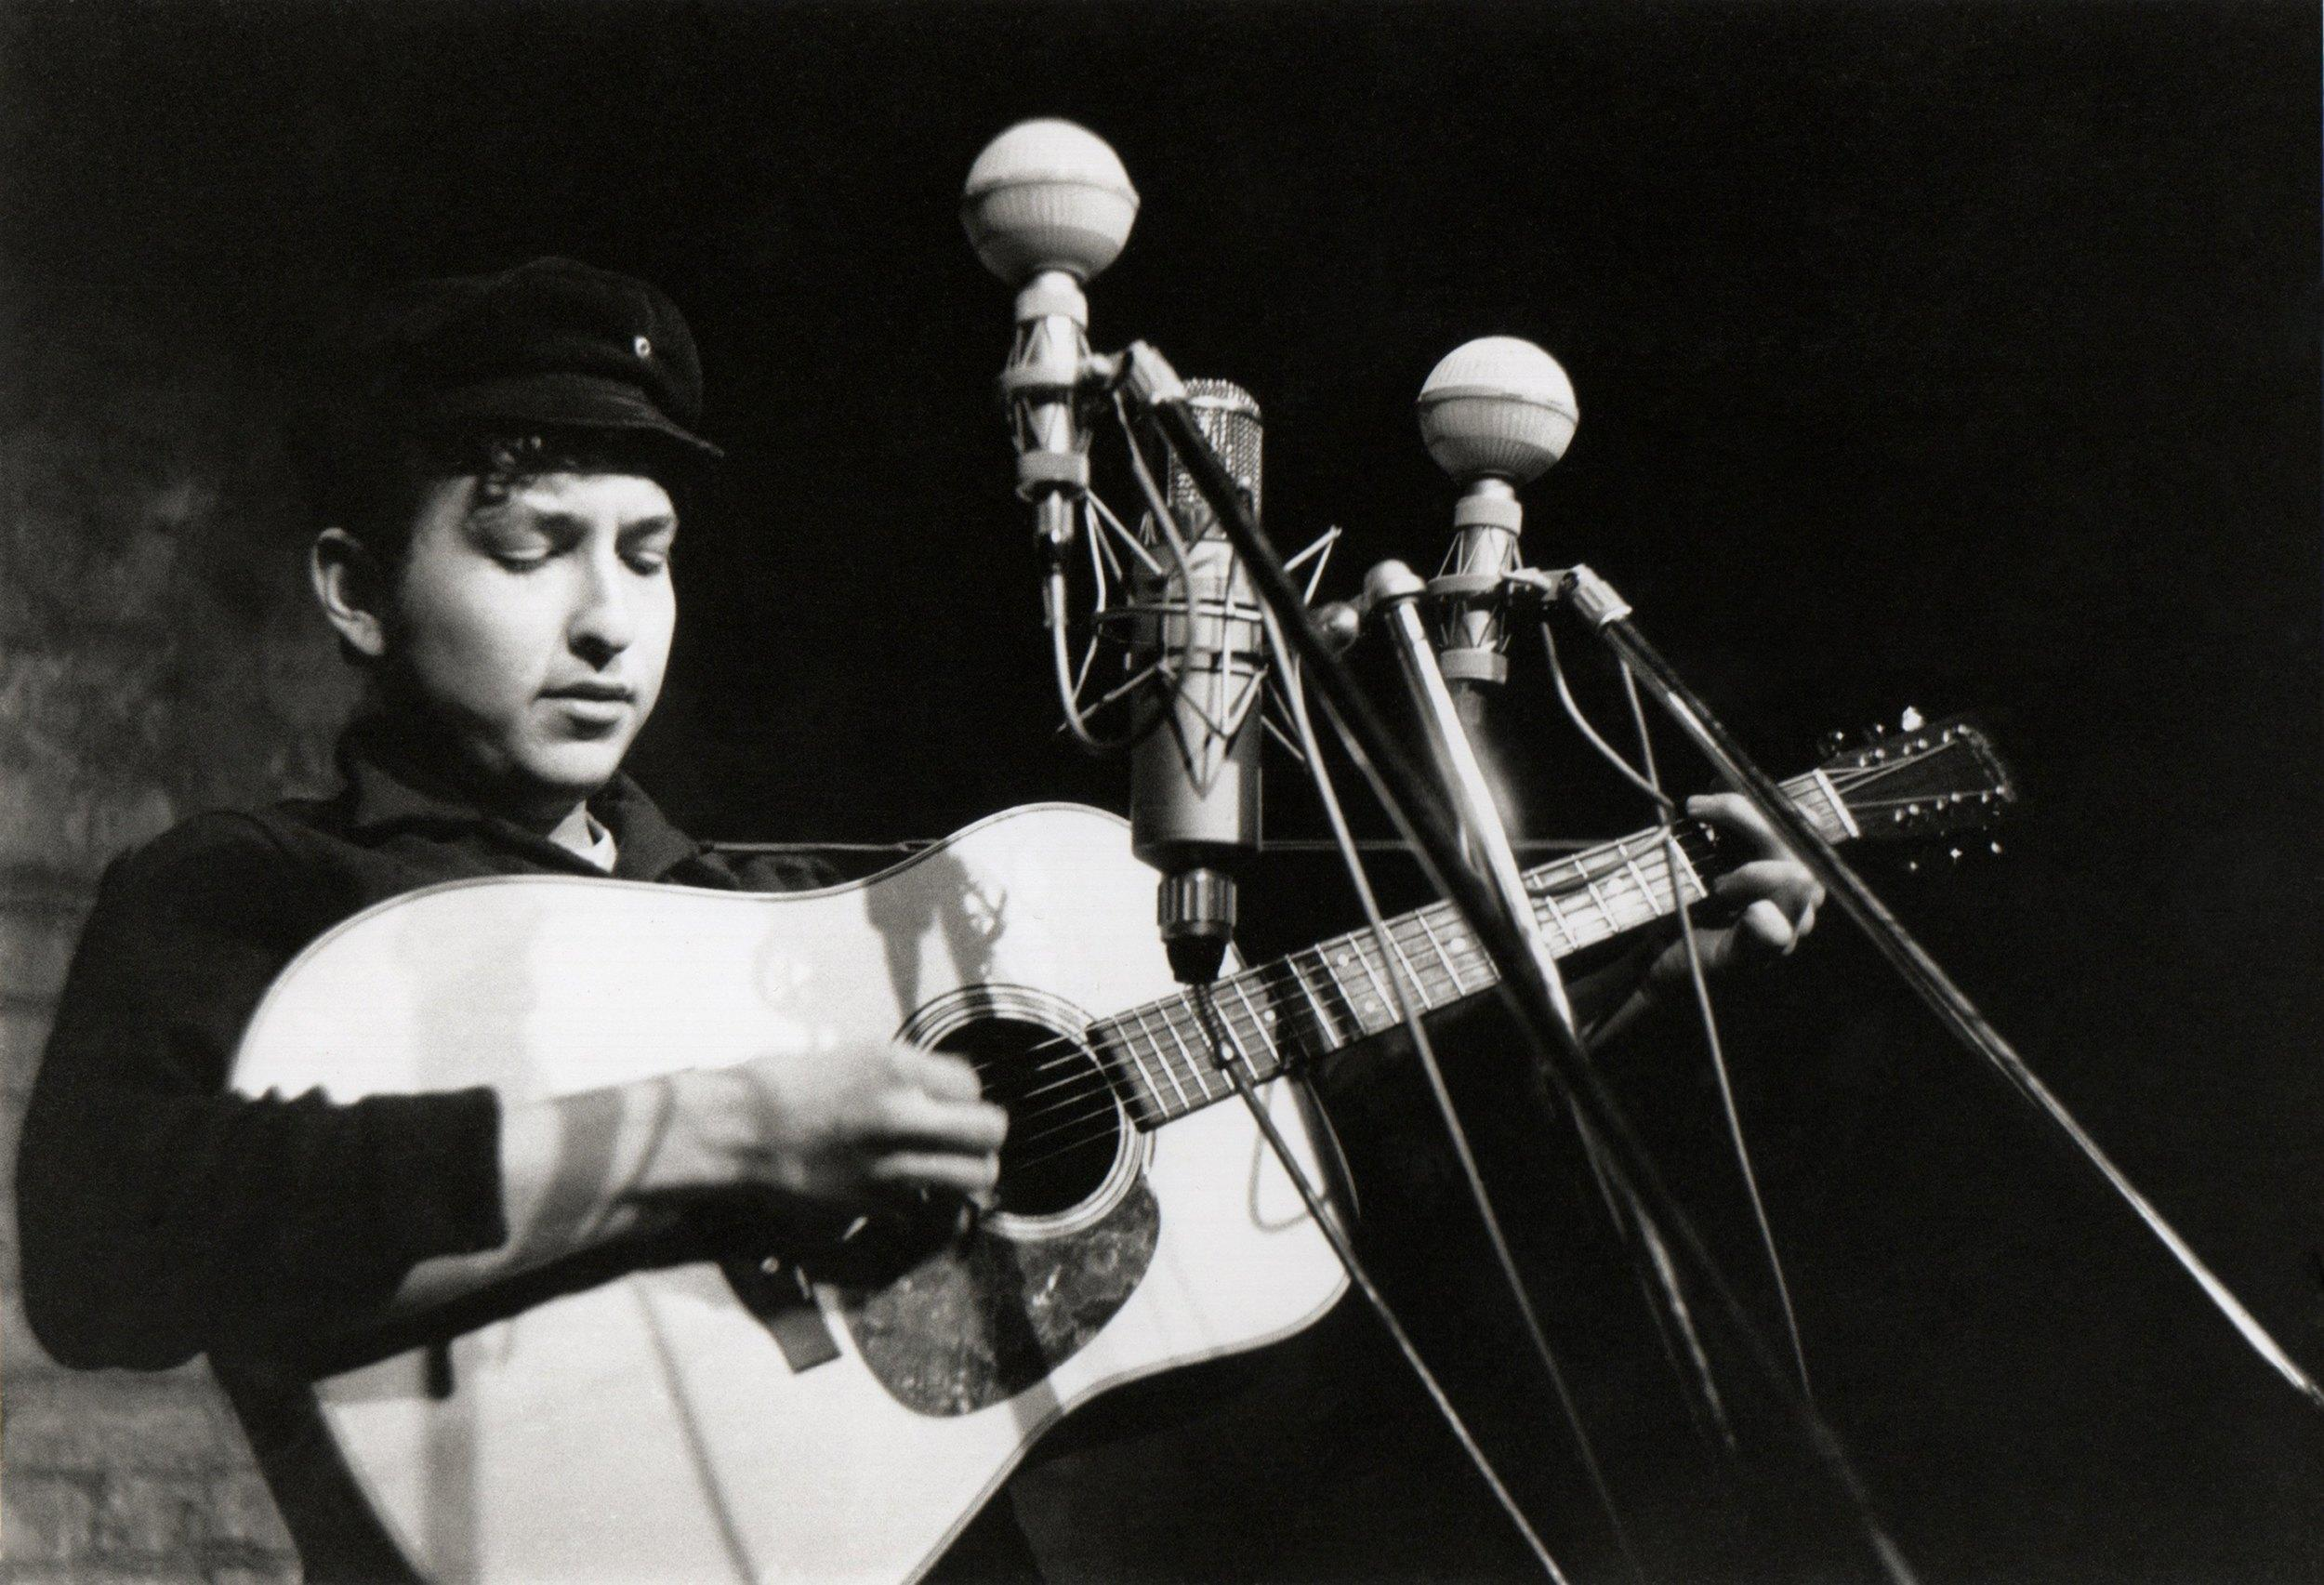 NEW YORK - 1961:  Bob Dylan performs at The Bitter End folk club in Greenwich Village in 1961 in New York City, New York. (Photo by Sigmund Goode/Michael Ochs Archive/Getty Images)